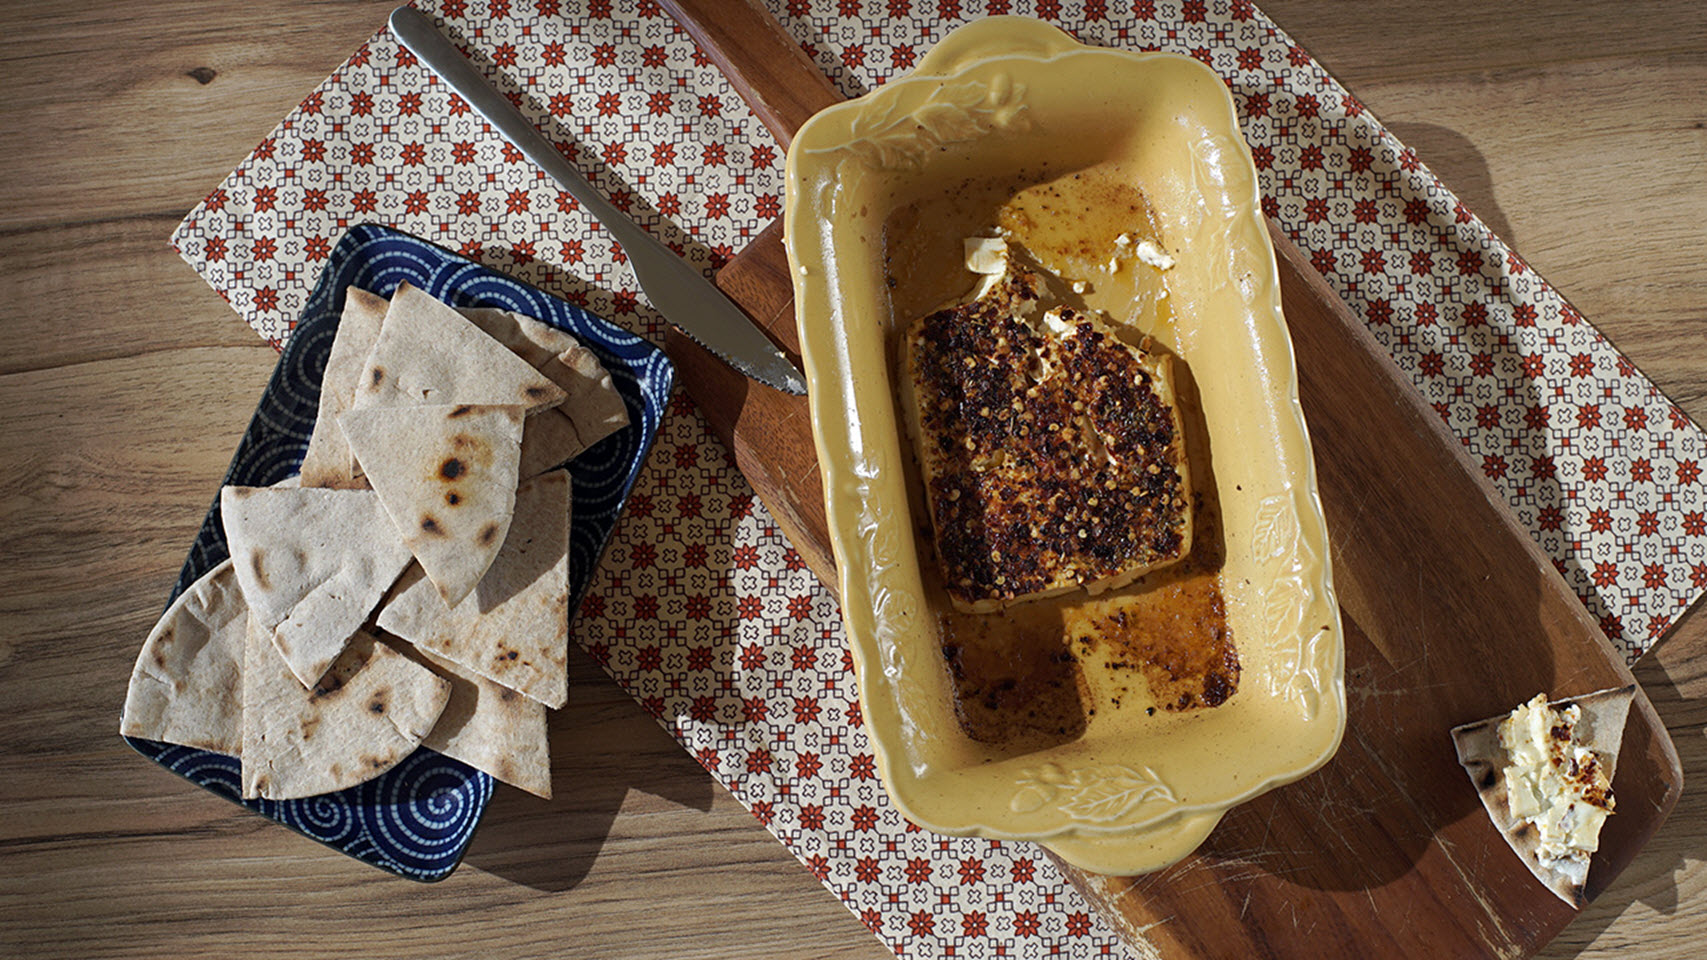 small baking dish with baked feta topped with lots of red chili flakes and pita bread on the side